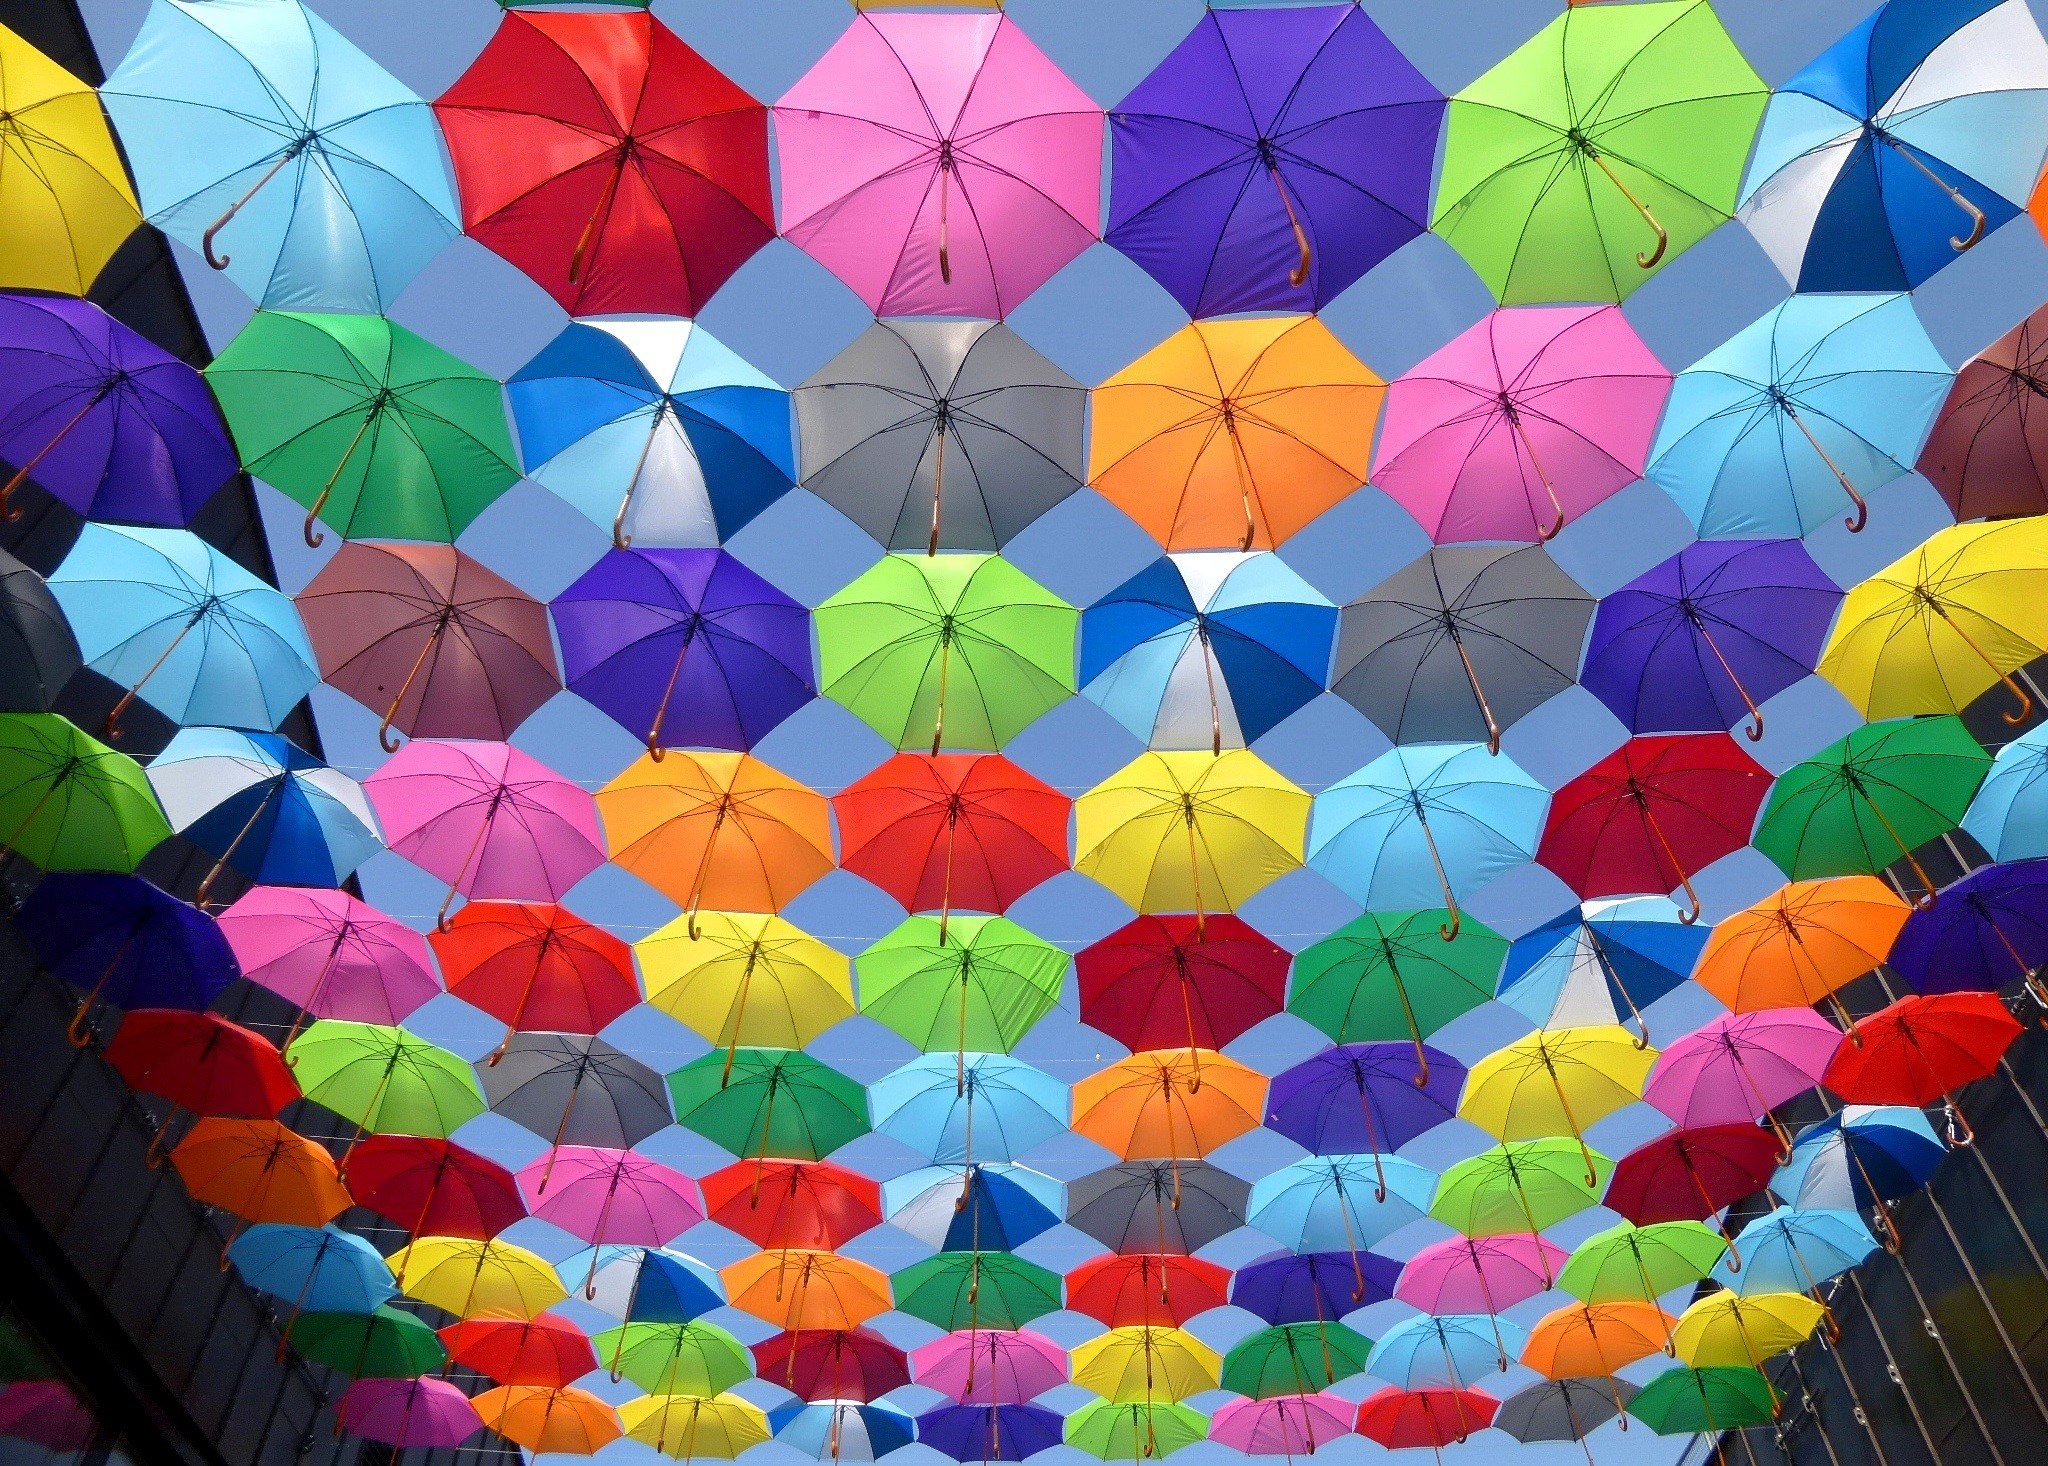 2048x1466 Yellow Blue Red Pink Purple Green Multicolored Open Umbrellas Hanging on  Strings Under Blue Sky